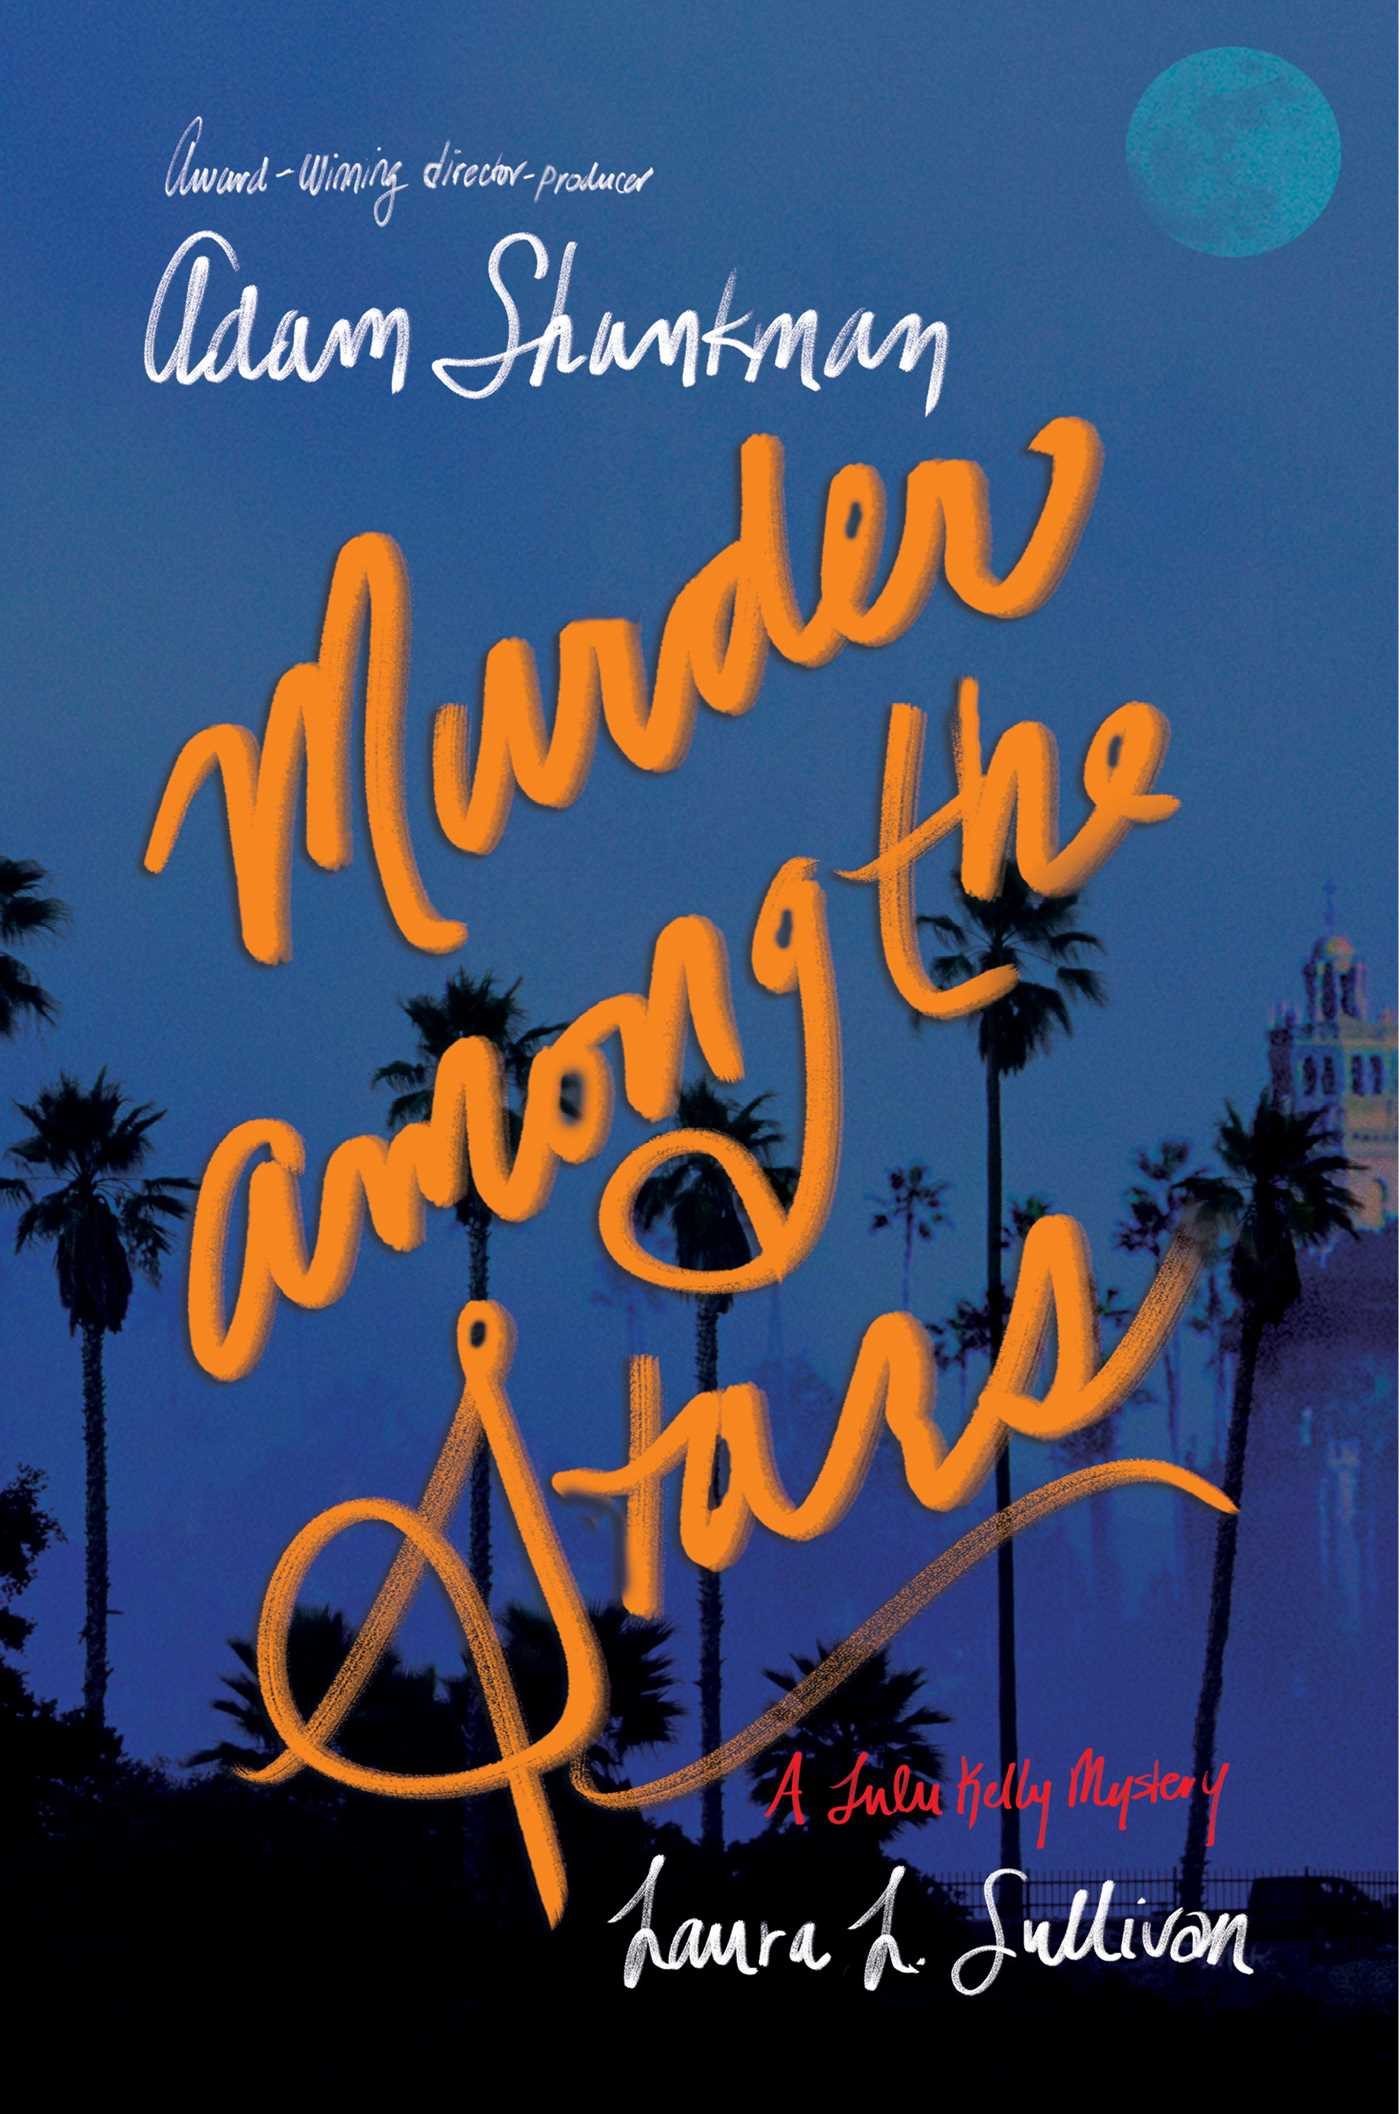 Murder among the stars 9781481447904 hr